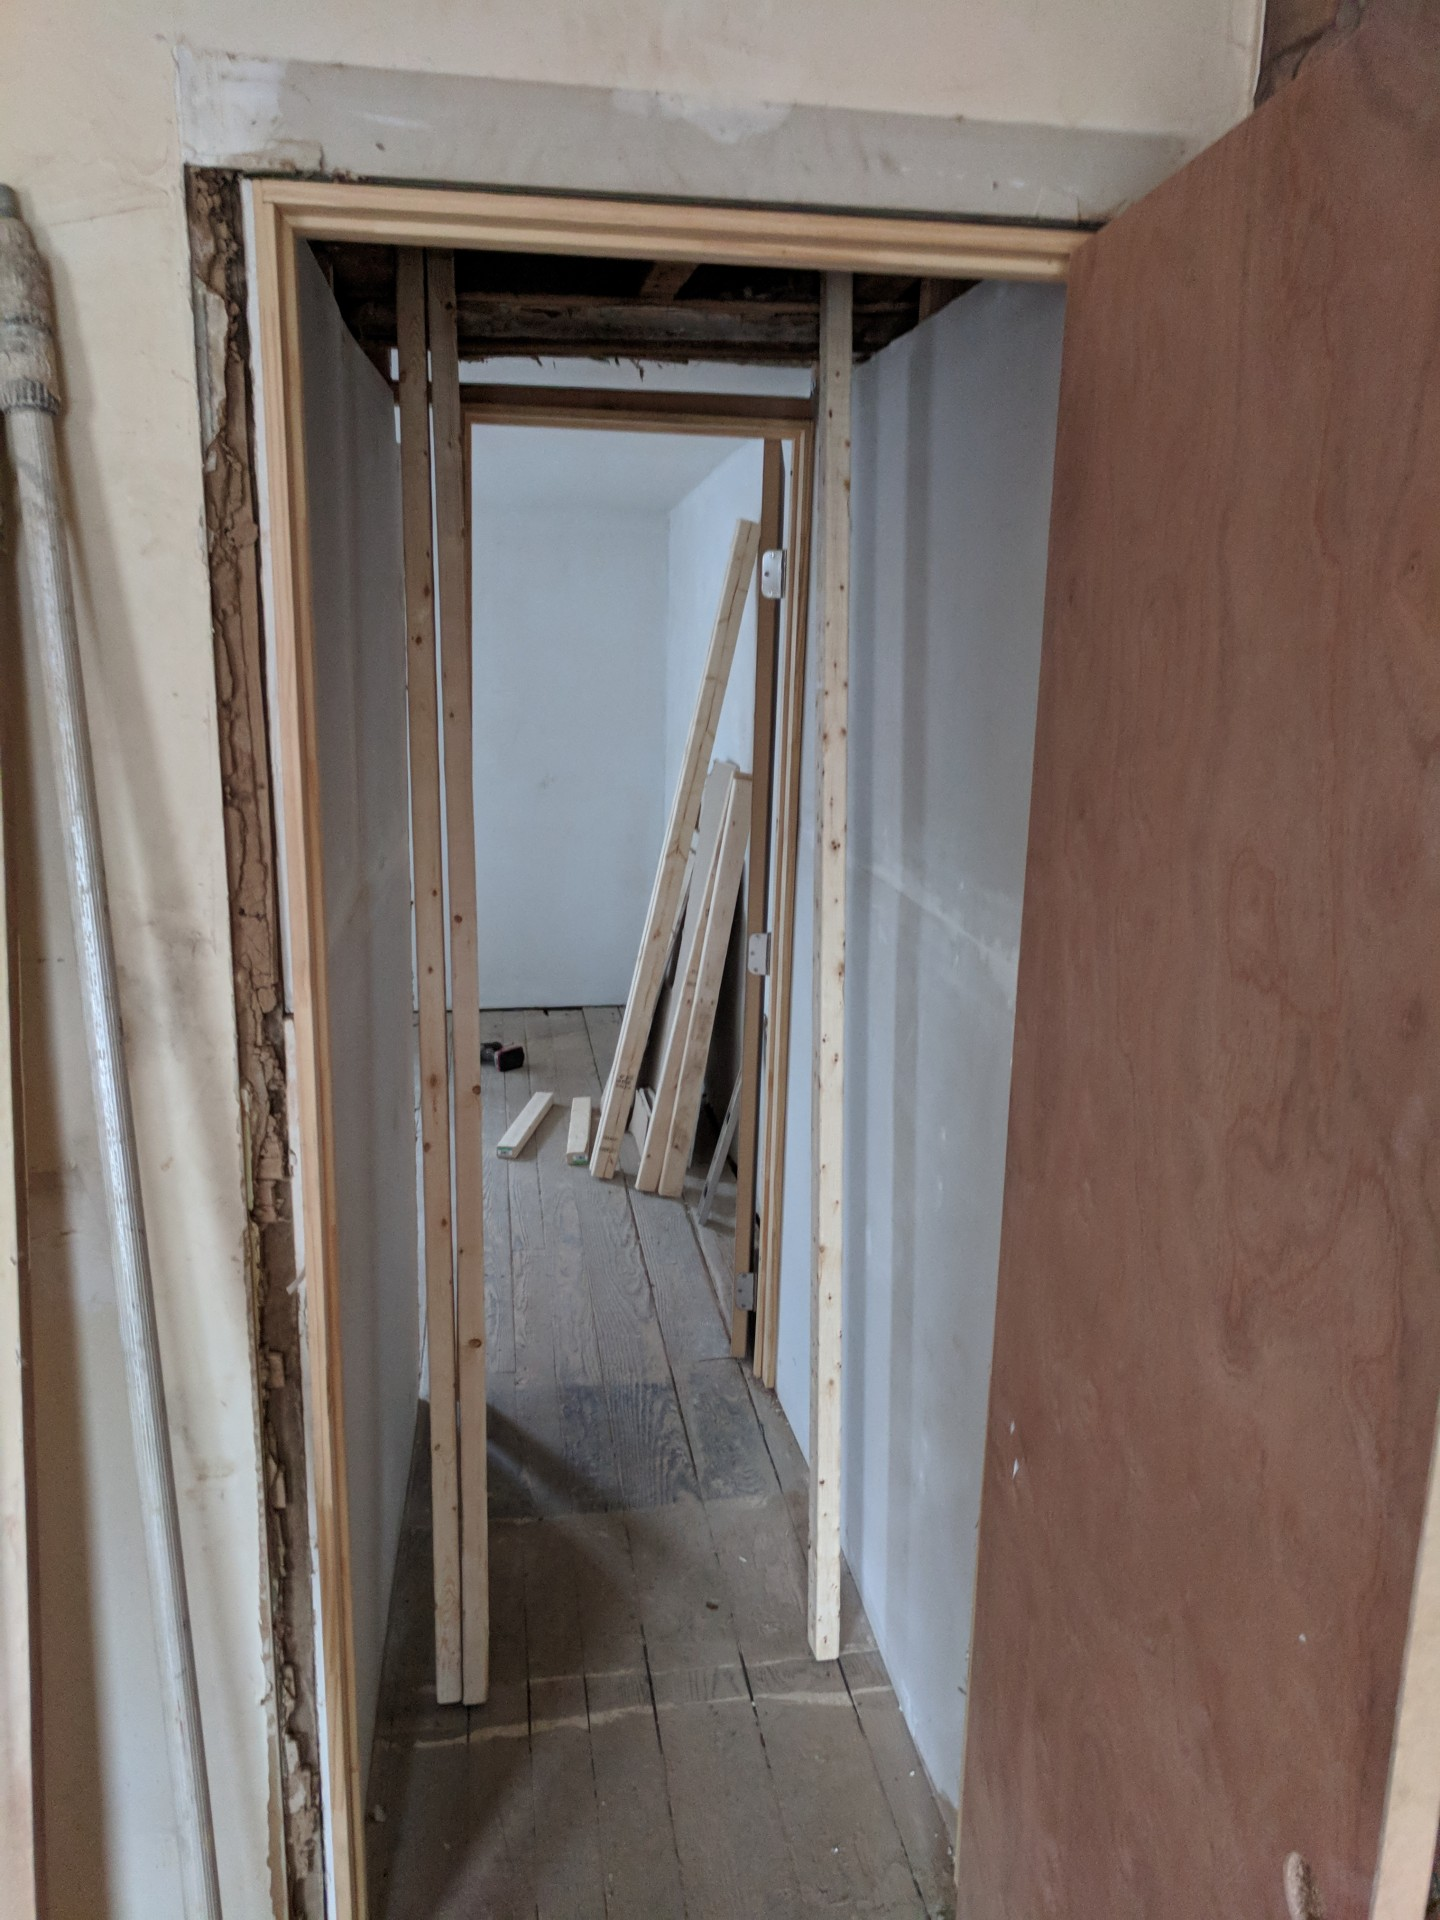 #3 Unfinished Closet Framing (Both Closets)